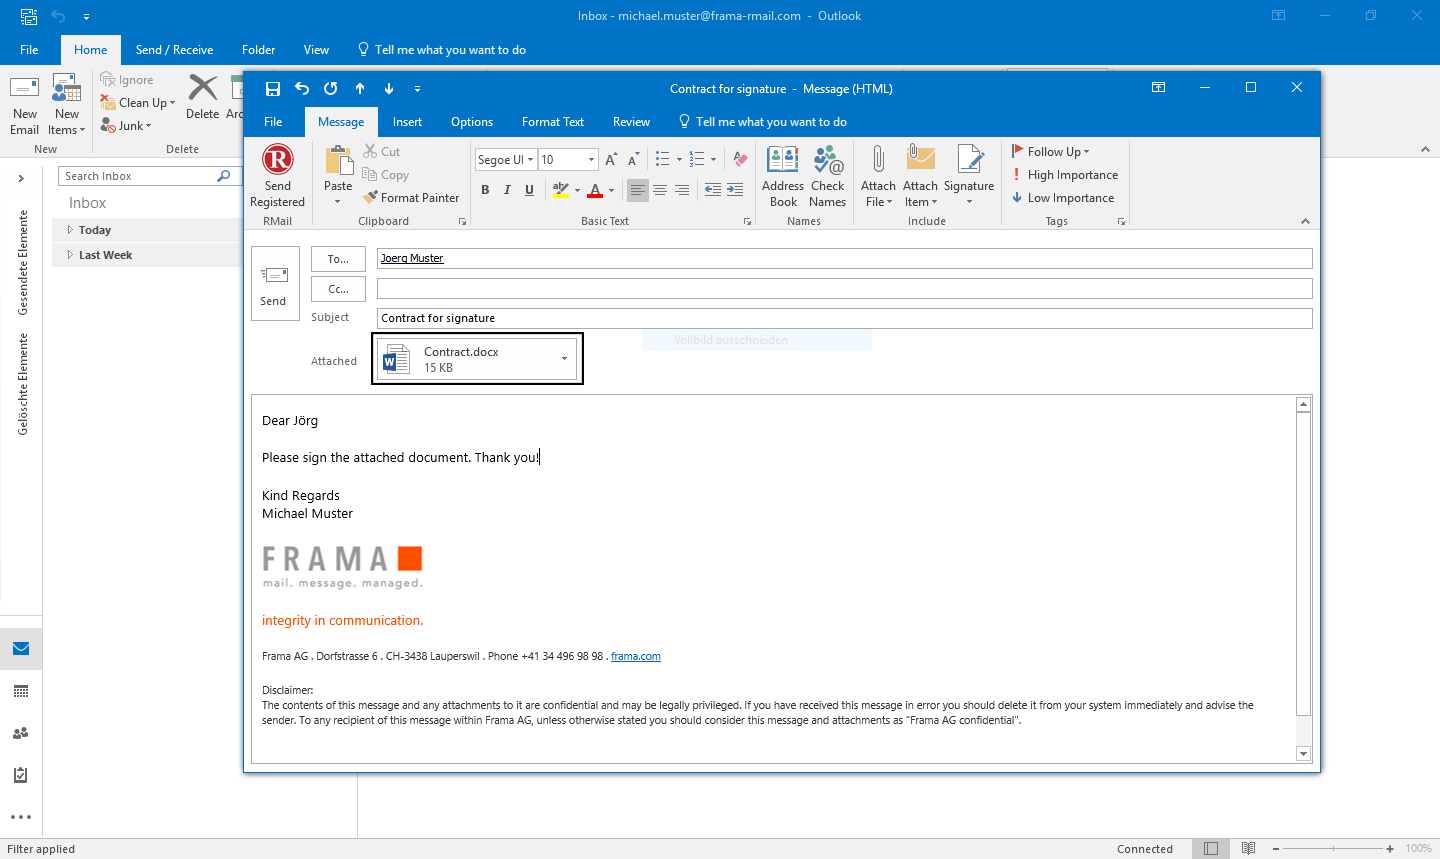 RMail for Outlook sign documents electronically - Step 1